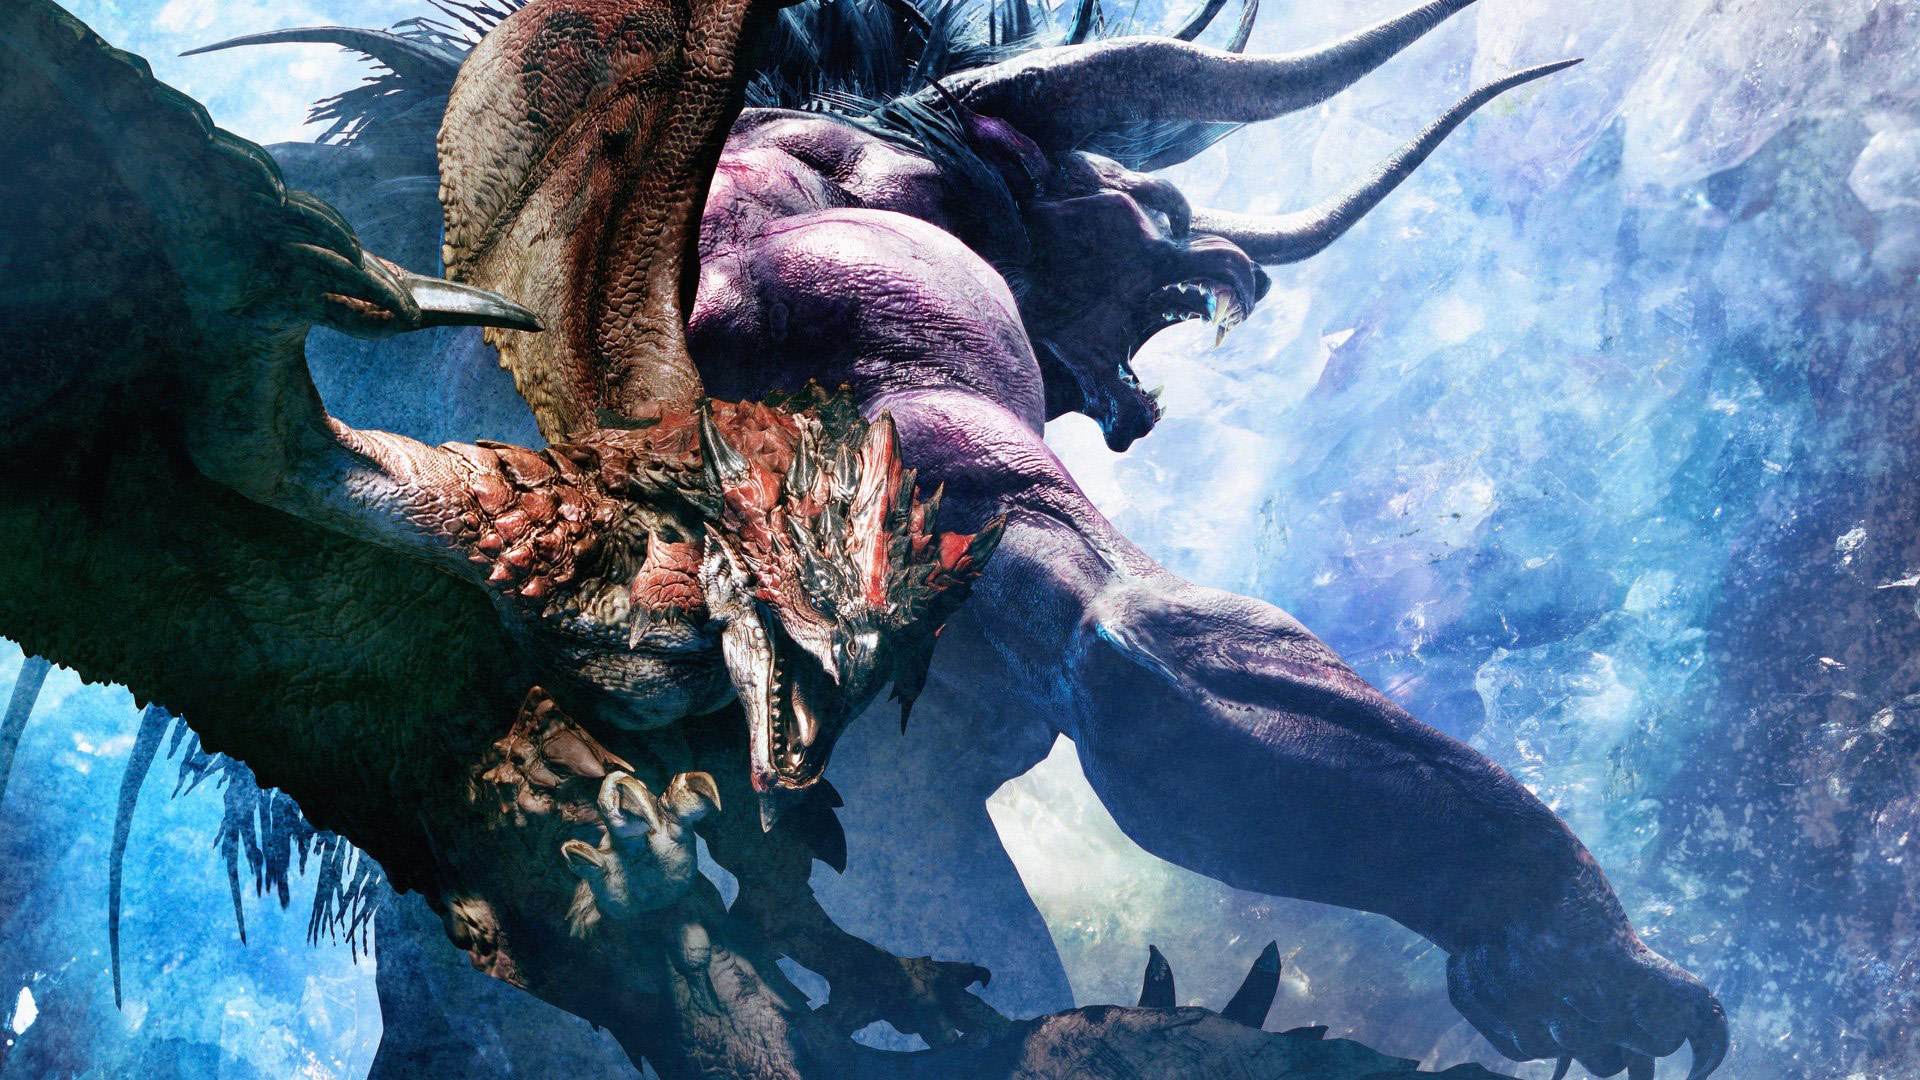 FINAL FANTASY XIV x MONSTER HUNTER: WORLD - Behemoth